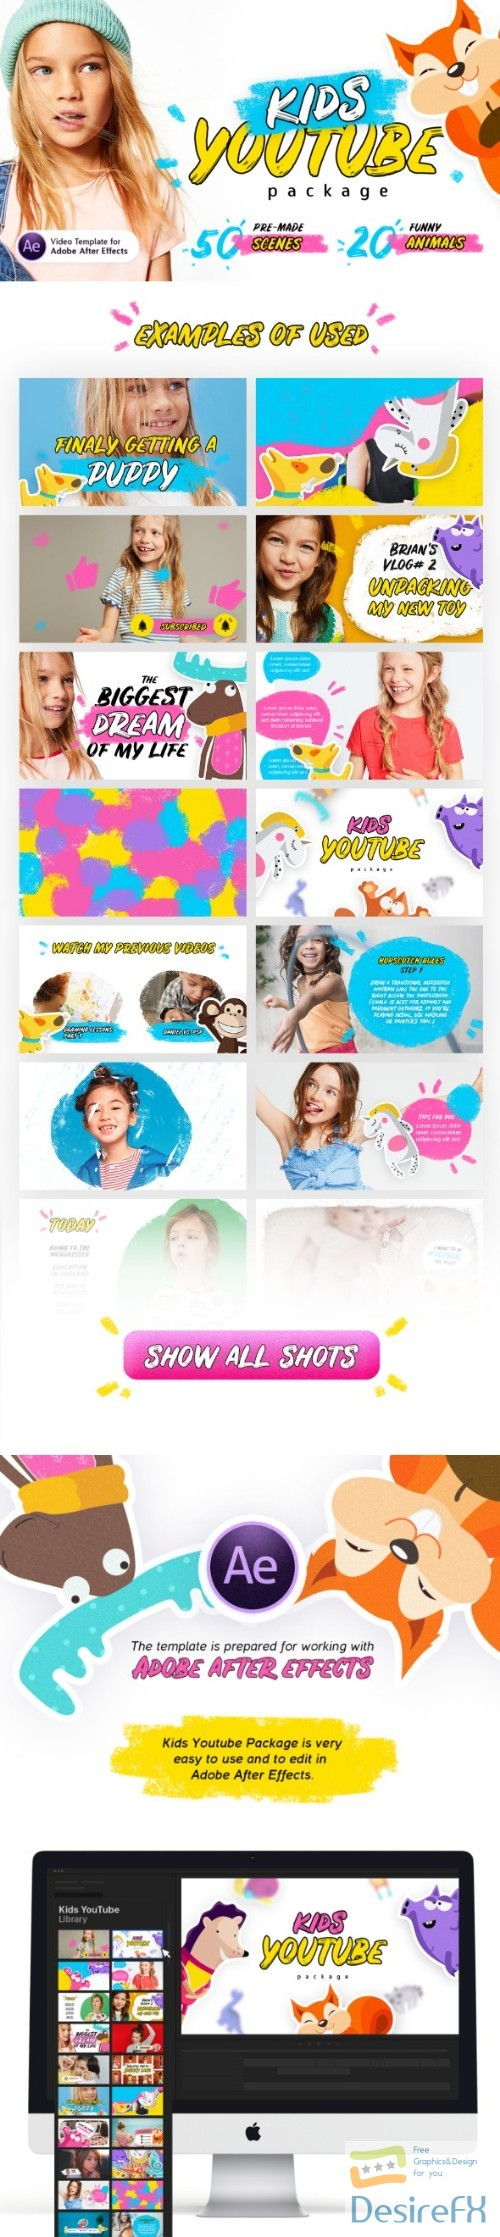 after-effects-projects - Videohive Kids Youtube Package | For Ae V.1.3 22298286